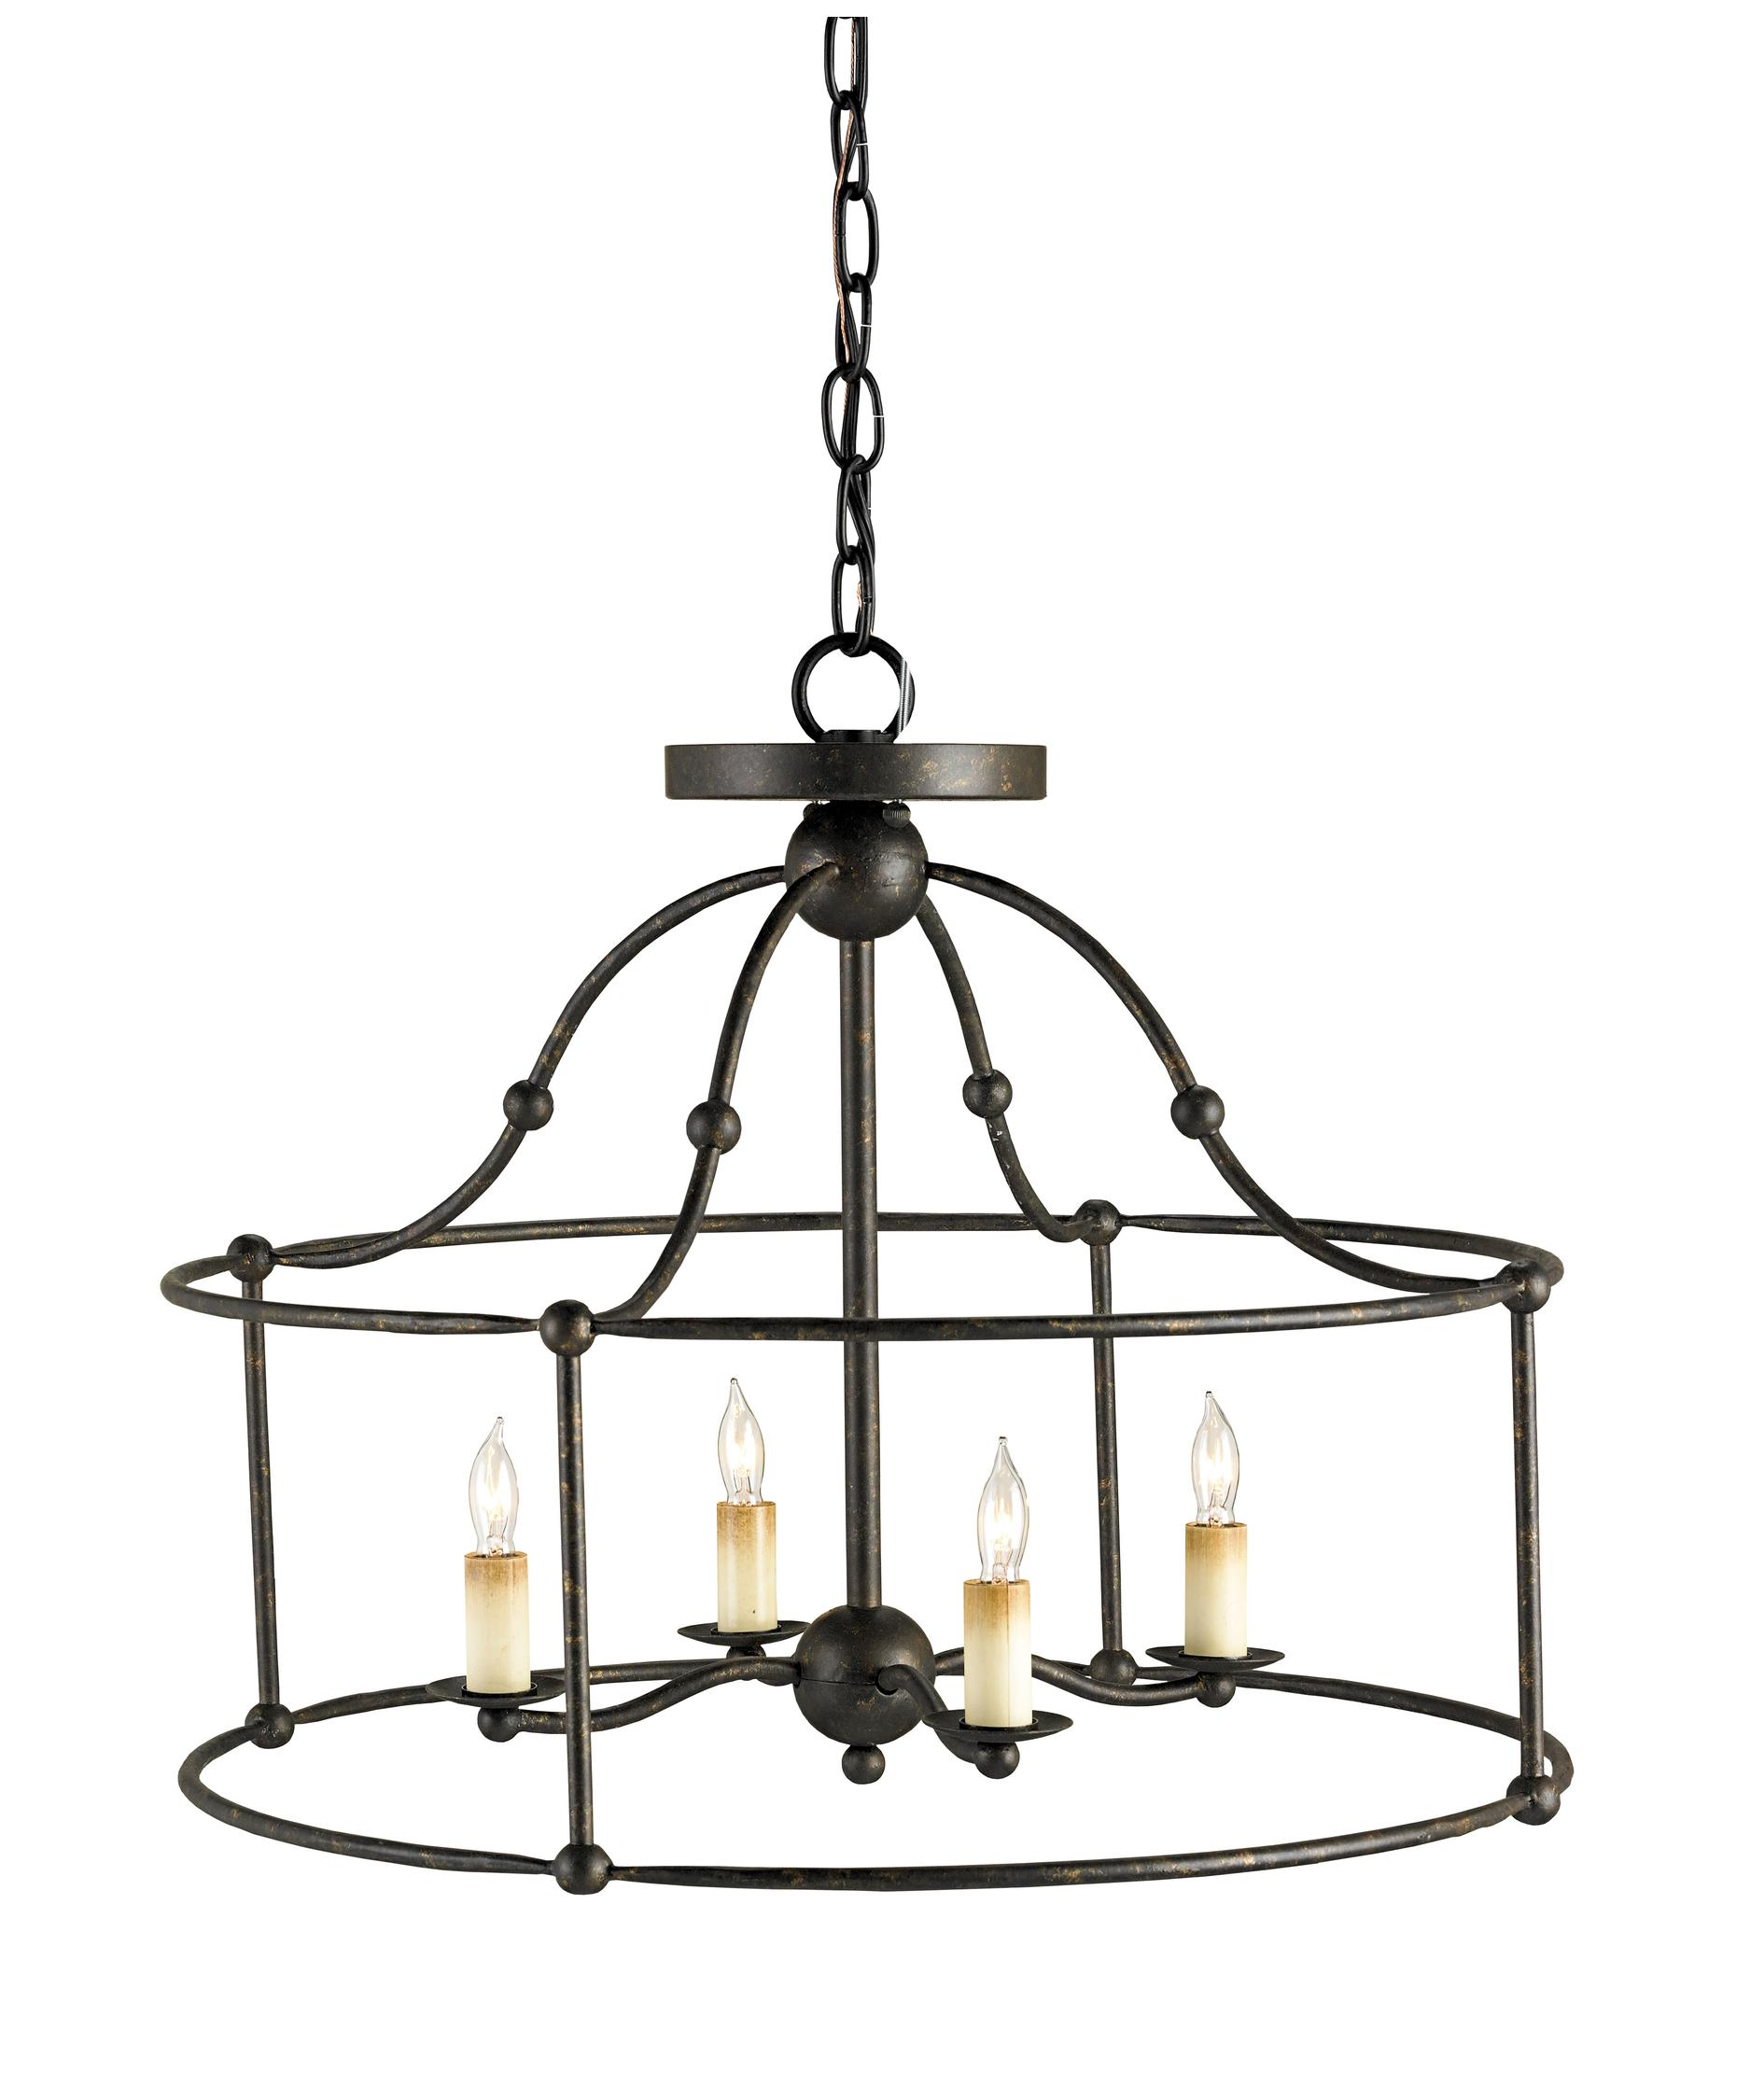 Currey and Company Fitzjames 20 Inch Wide 4 Light Large Pendant | Capitol  Lighting 1-800lighting.com